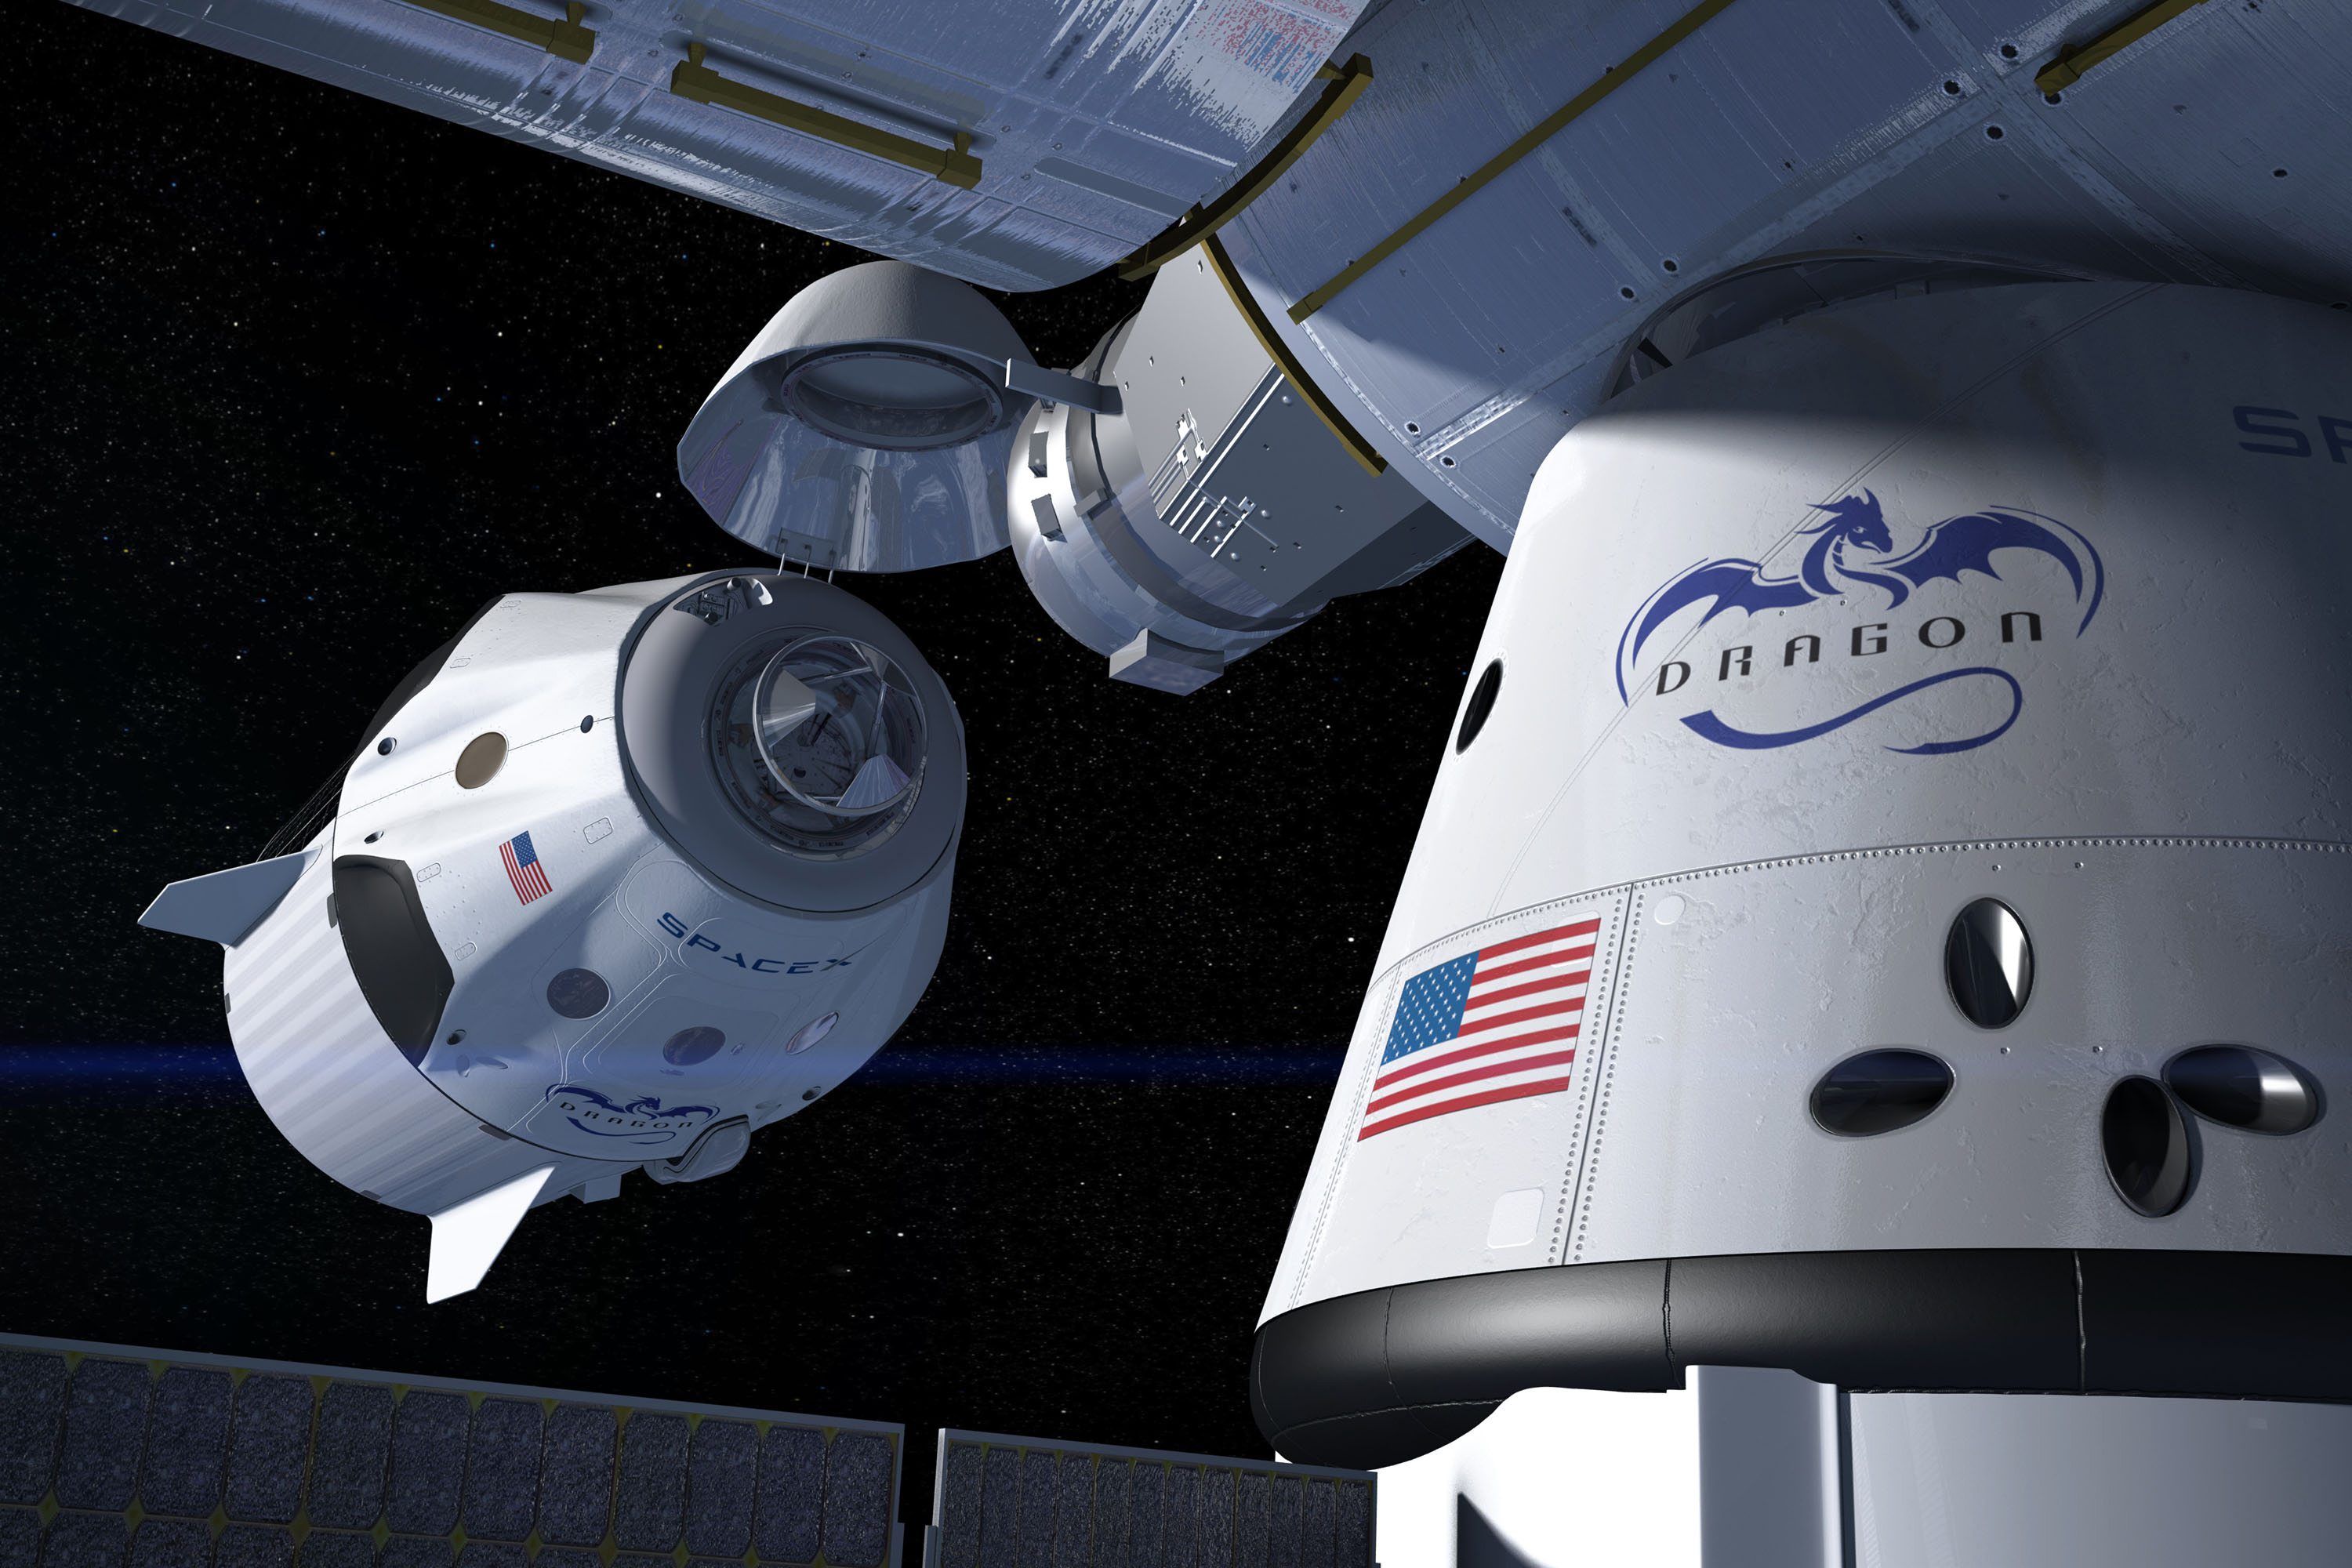 spacex dragon docking - photo #20